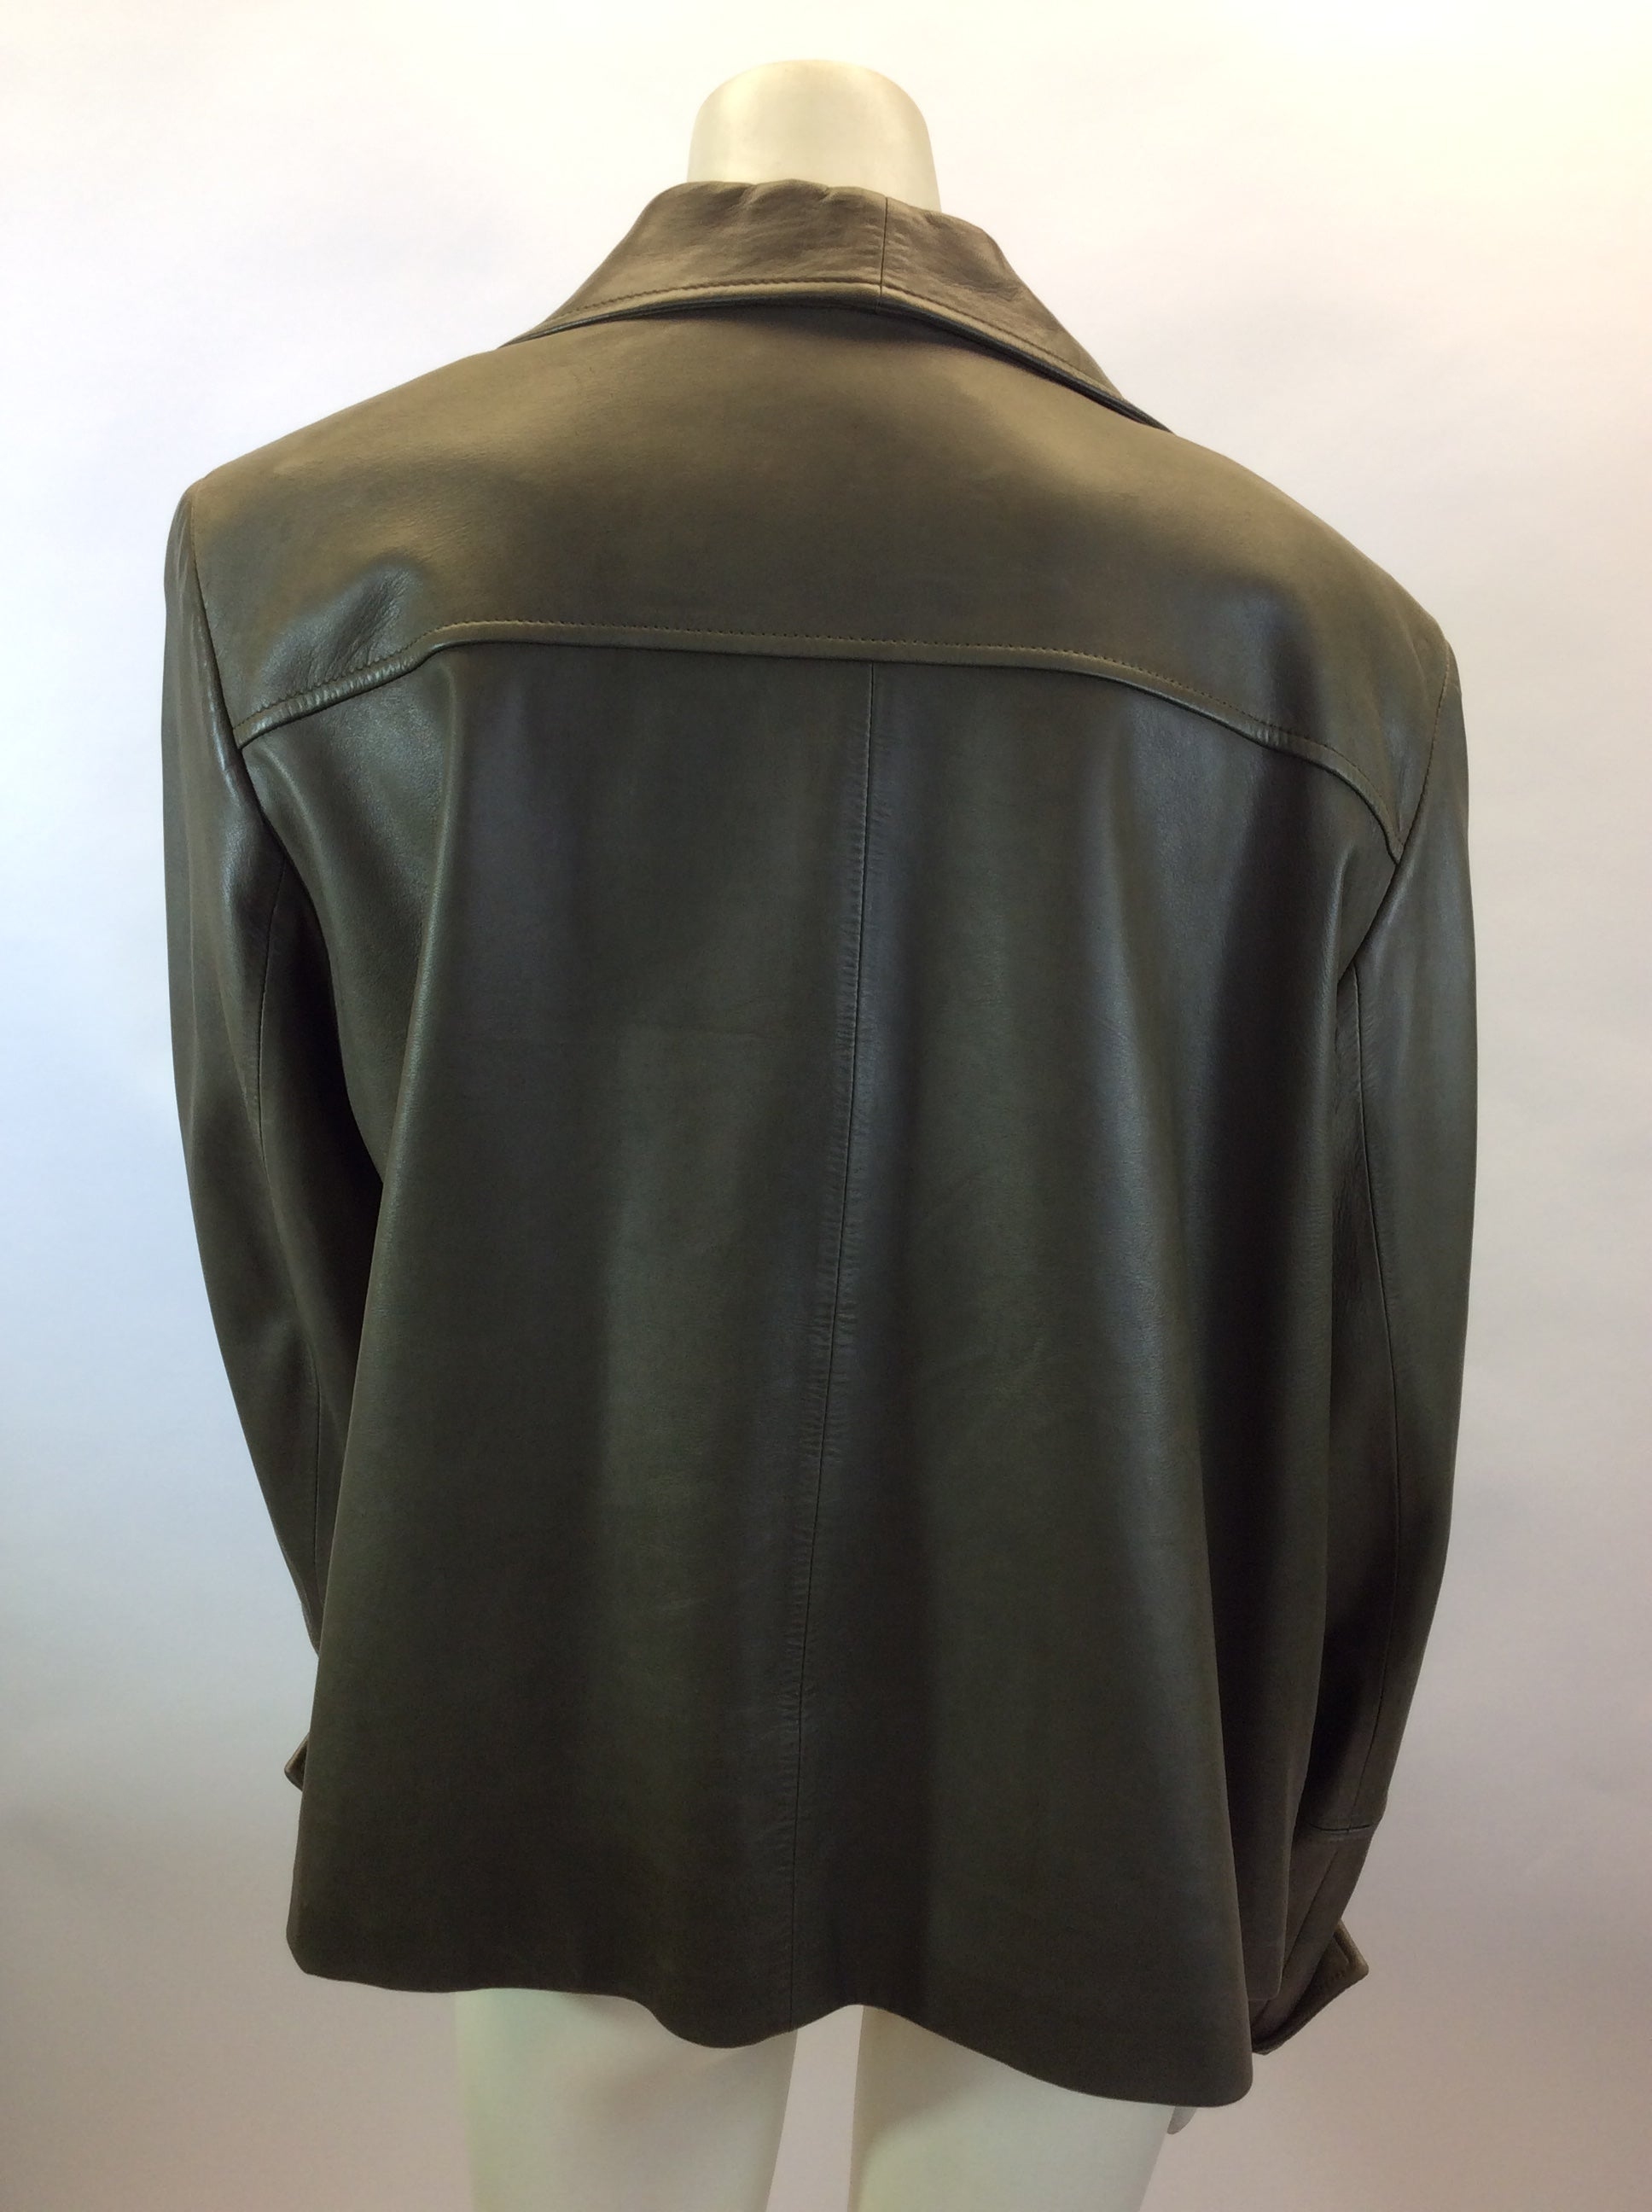 daa44f01fff4 Lafayette 148 Olive Green Leather Jacket For Sale at 1stdibs